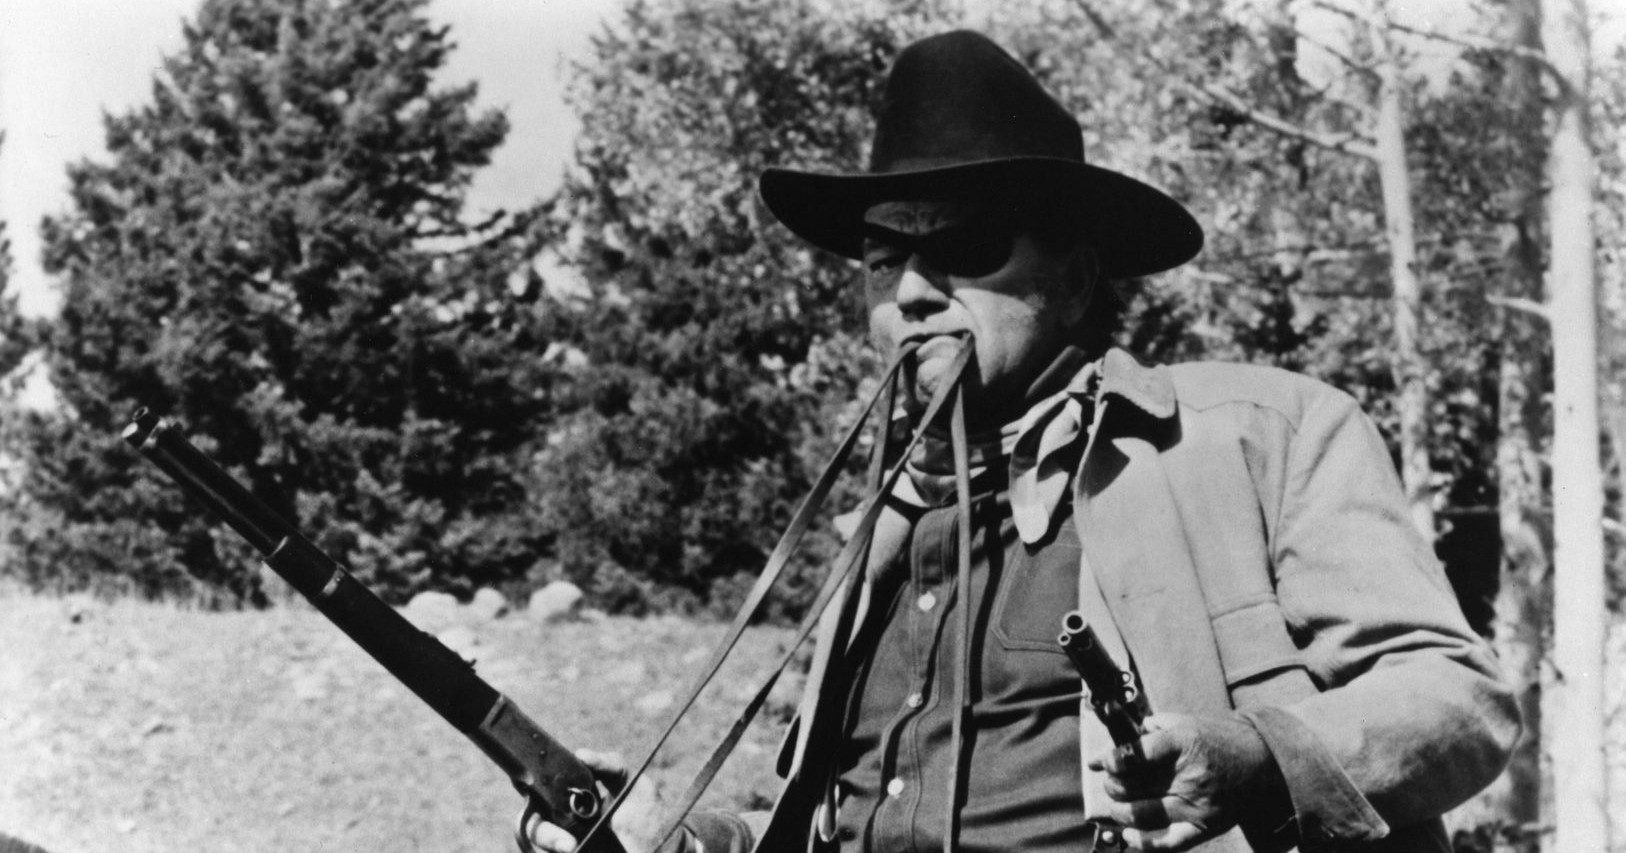 Where was Rooster Cogburn filmed?